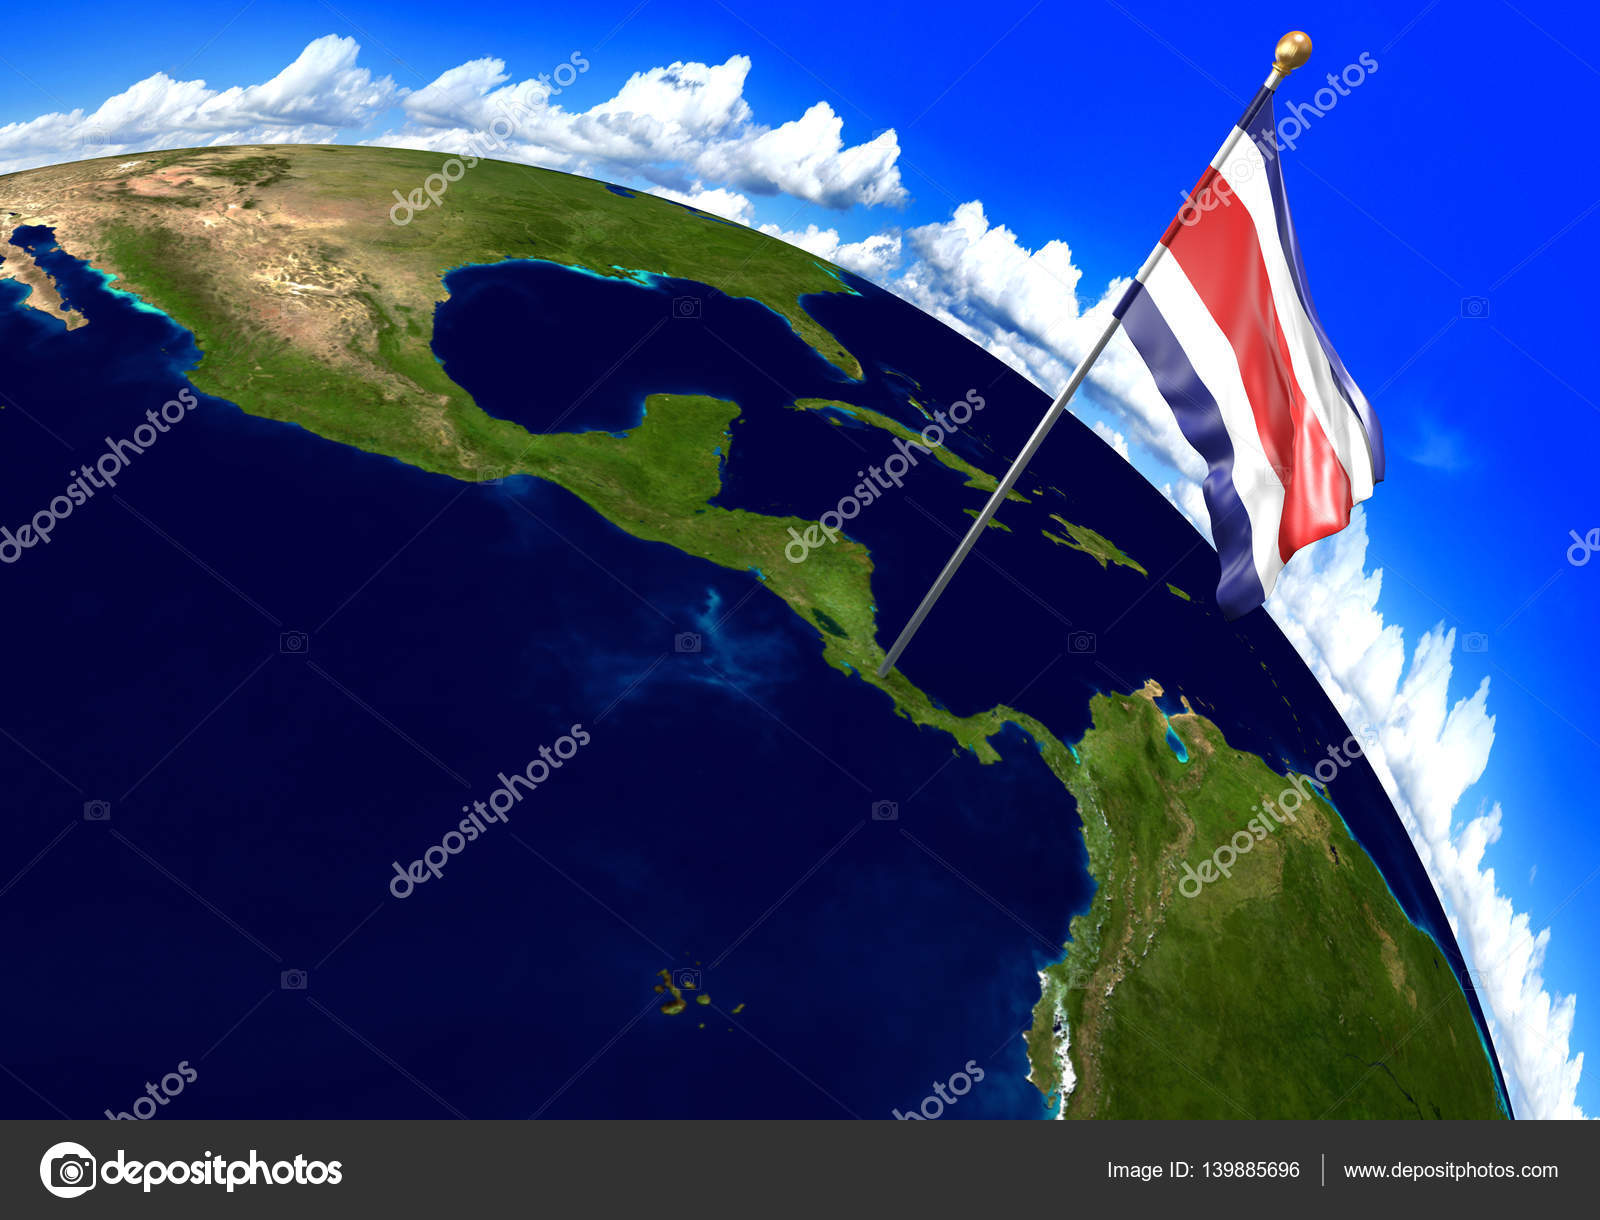 Costa rica national flag marking the country location on world map 3d render of the national flag of costa rica over the geographic location of the country on a world map parts of this image furnished by nasa gumiabroncs Images